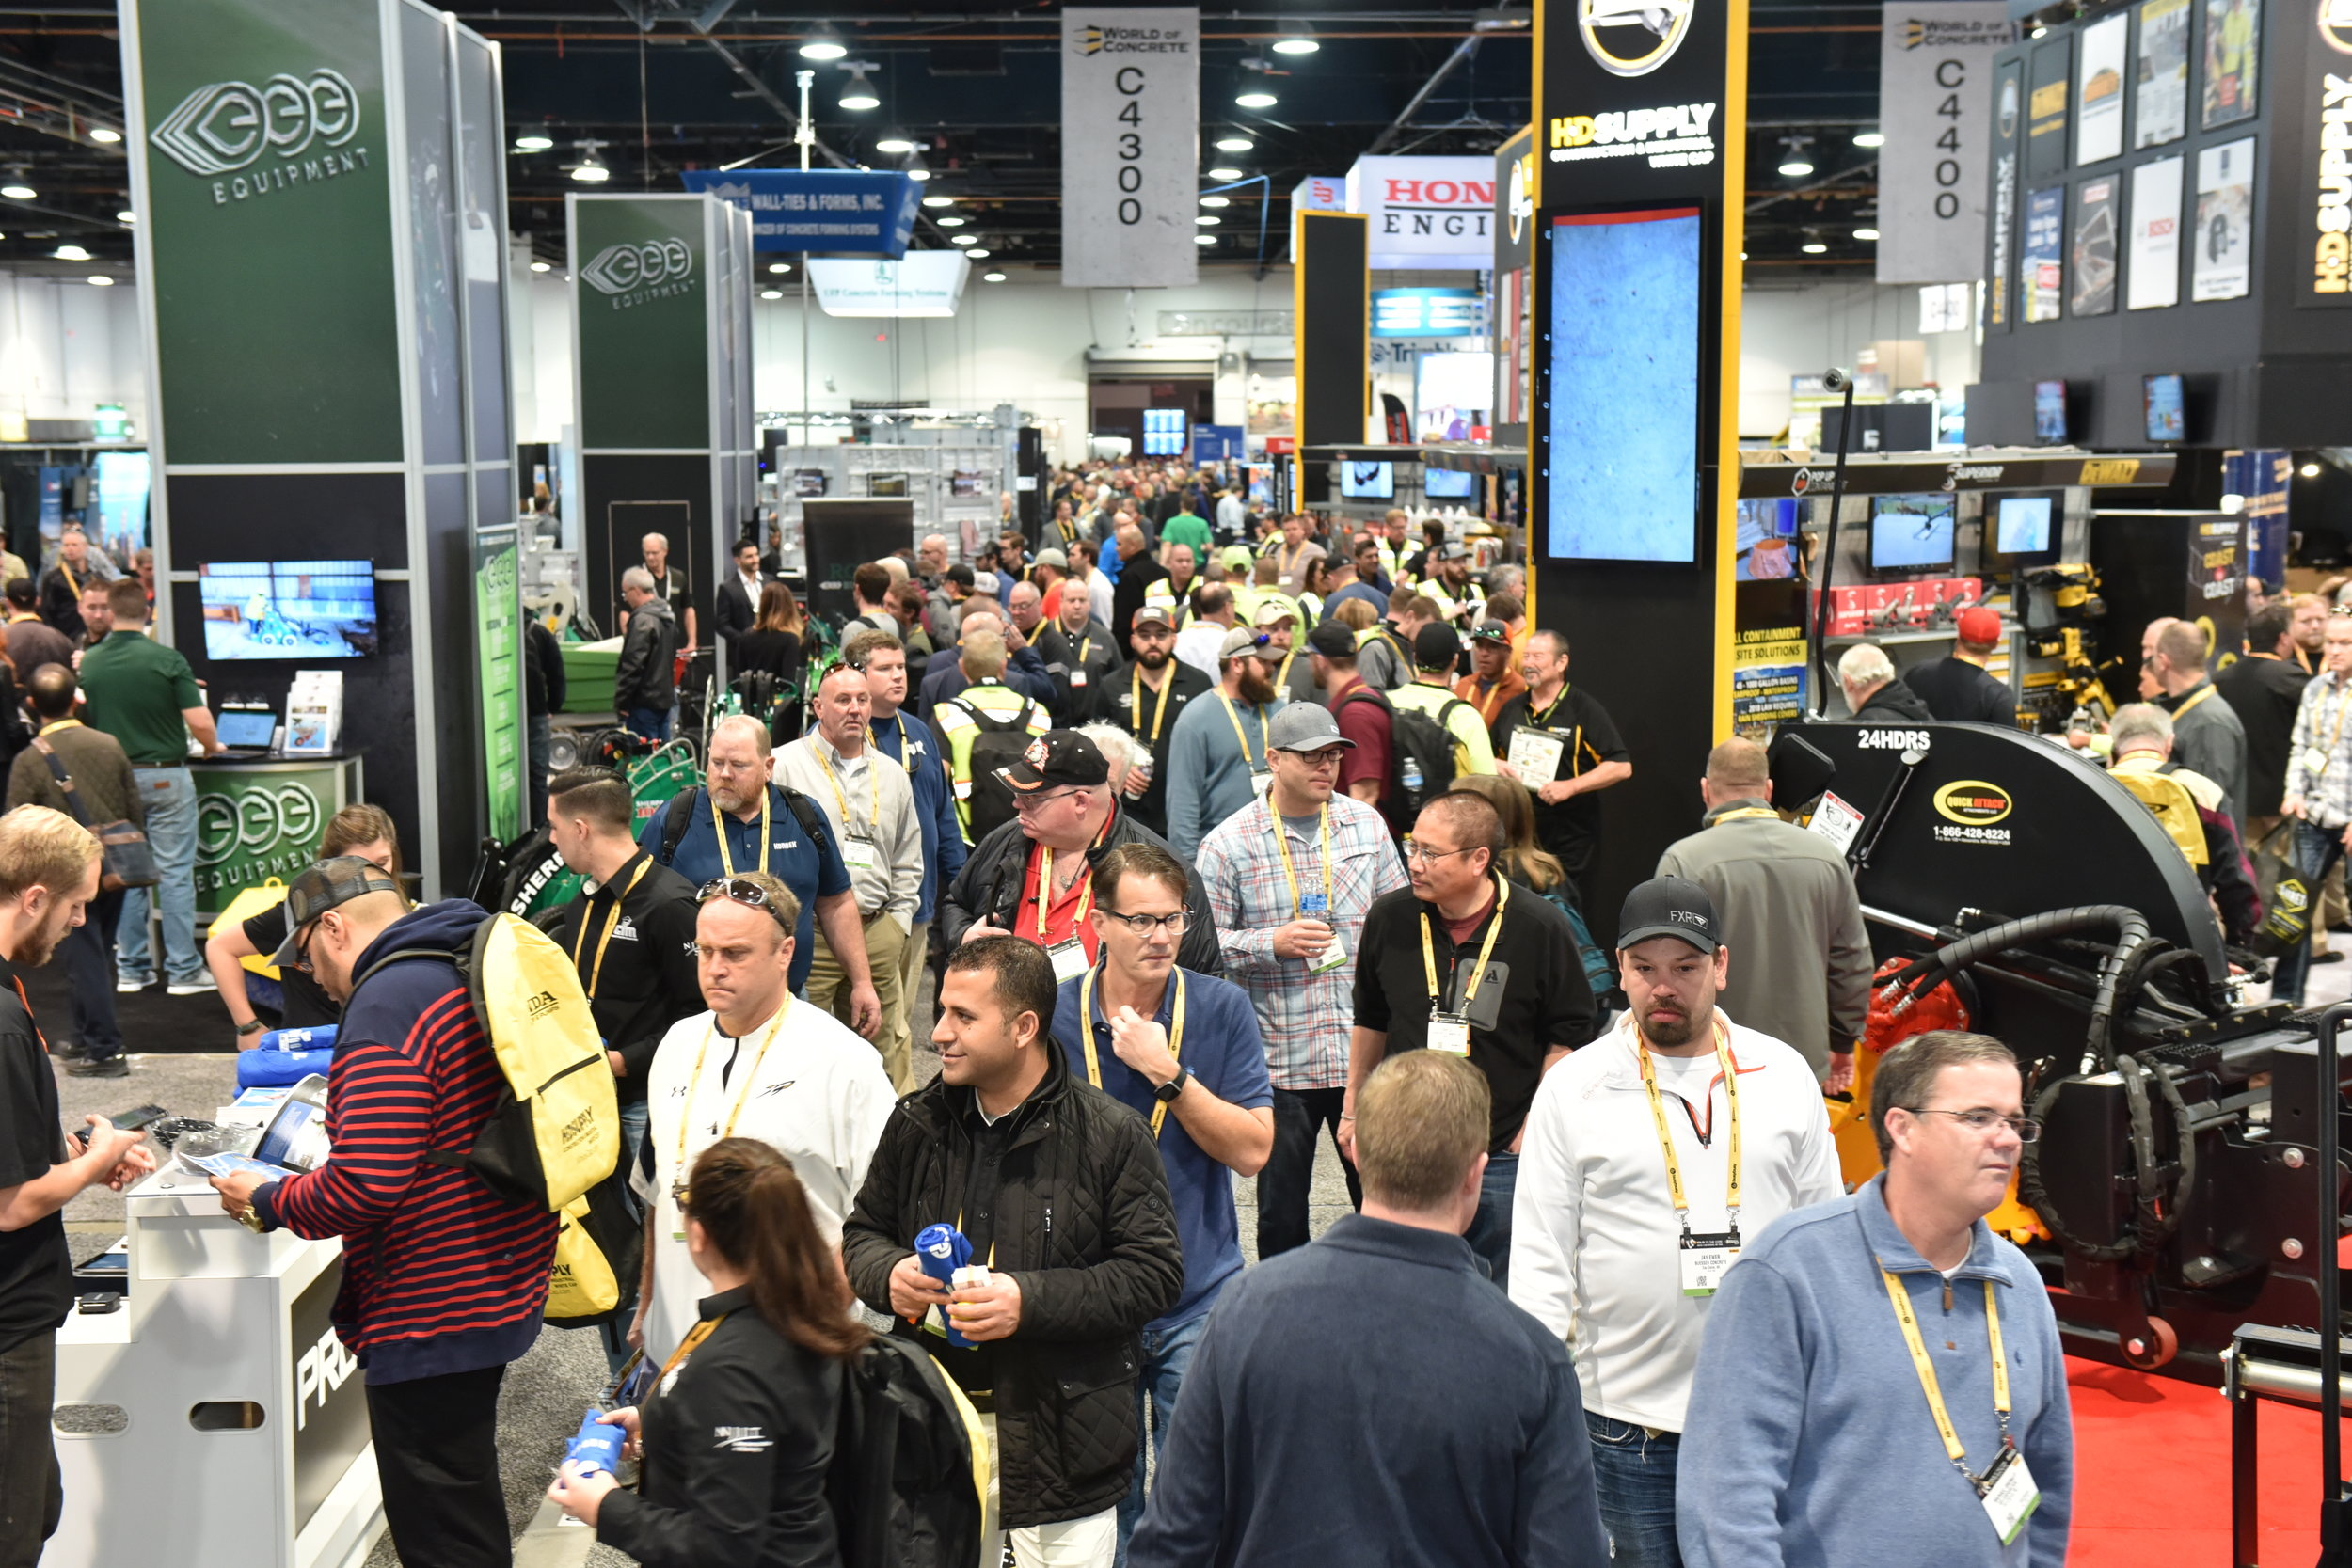 A new U.S. Air Force innovation challenge—this one, on non-destructive testing on steel-lined structures—will be announced in a Jan. 22, 2019 briefing at World of Concrete 2019. Photo of 2018 event by World of Concrete/Informa Exhibitions.